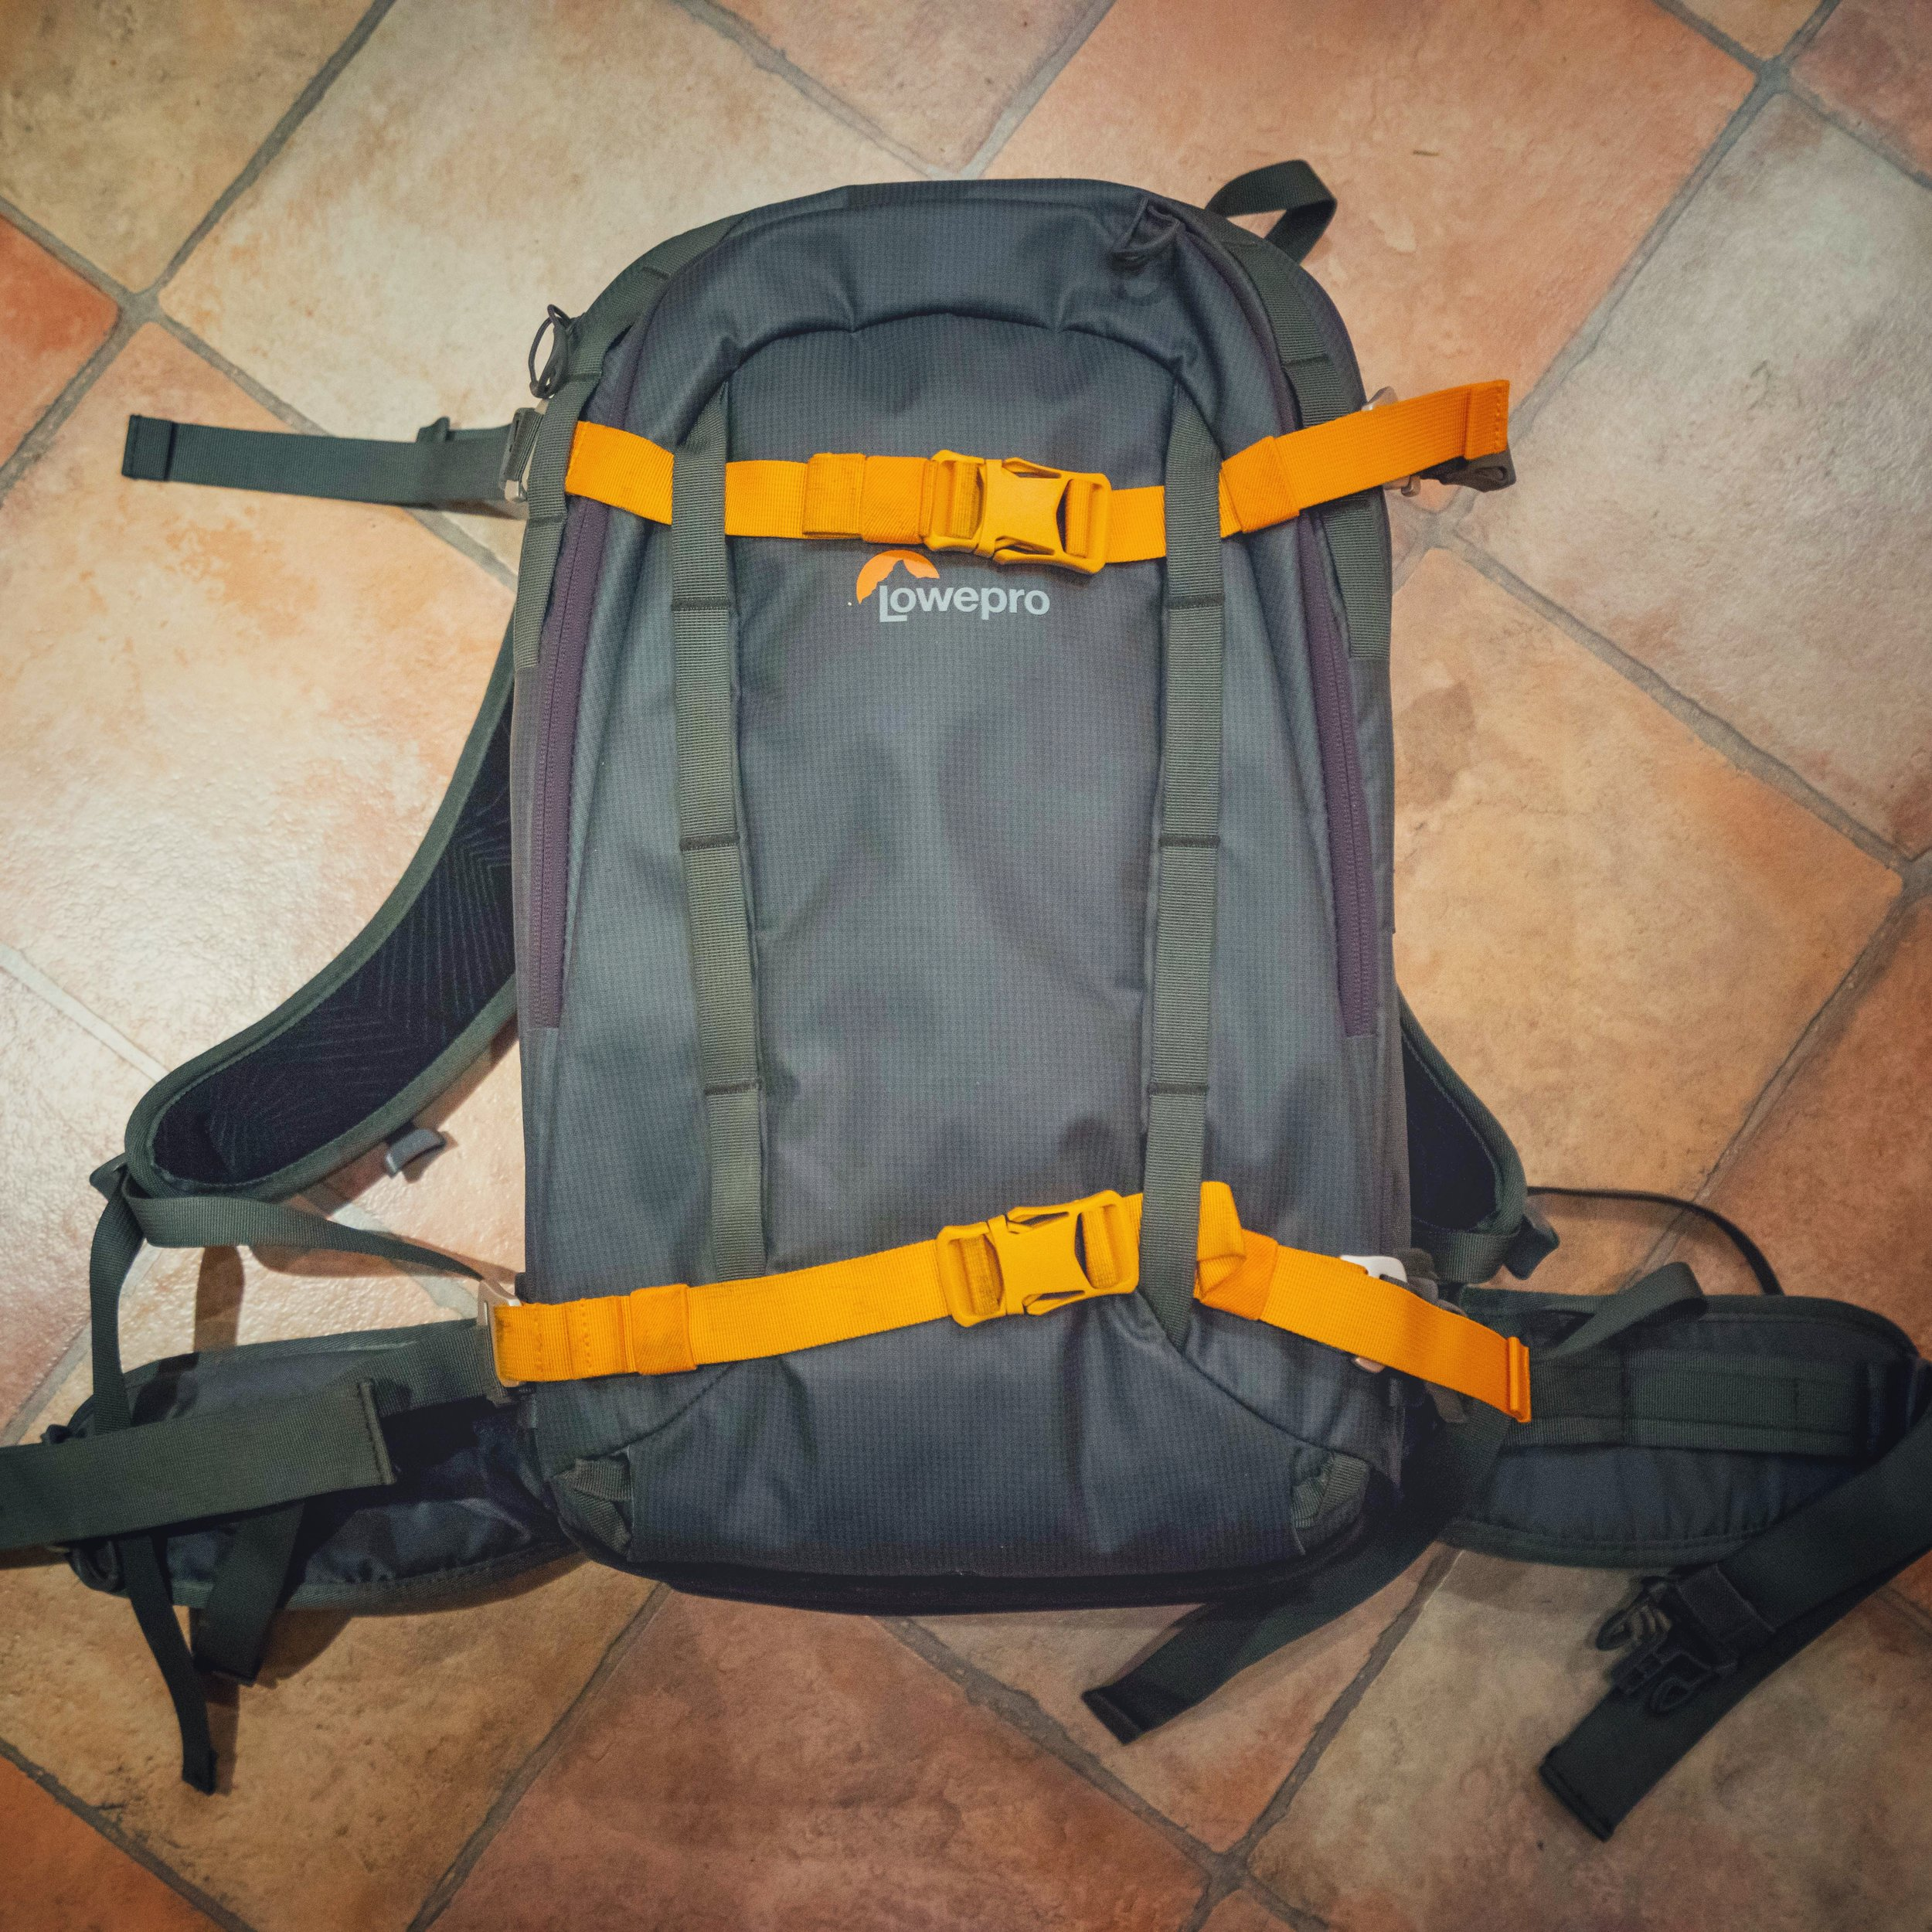 #1 The Backpack - This is a LowePro Whistler BP350.